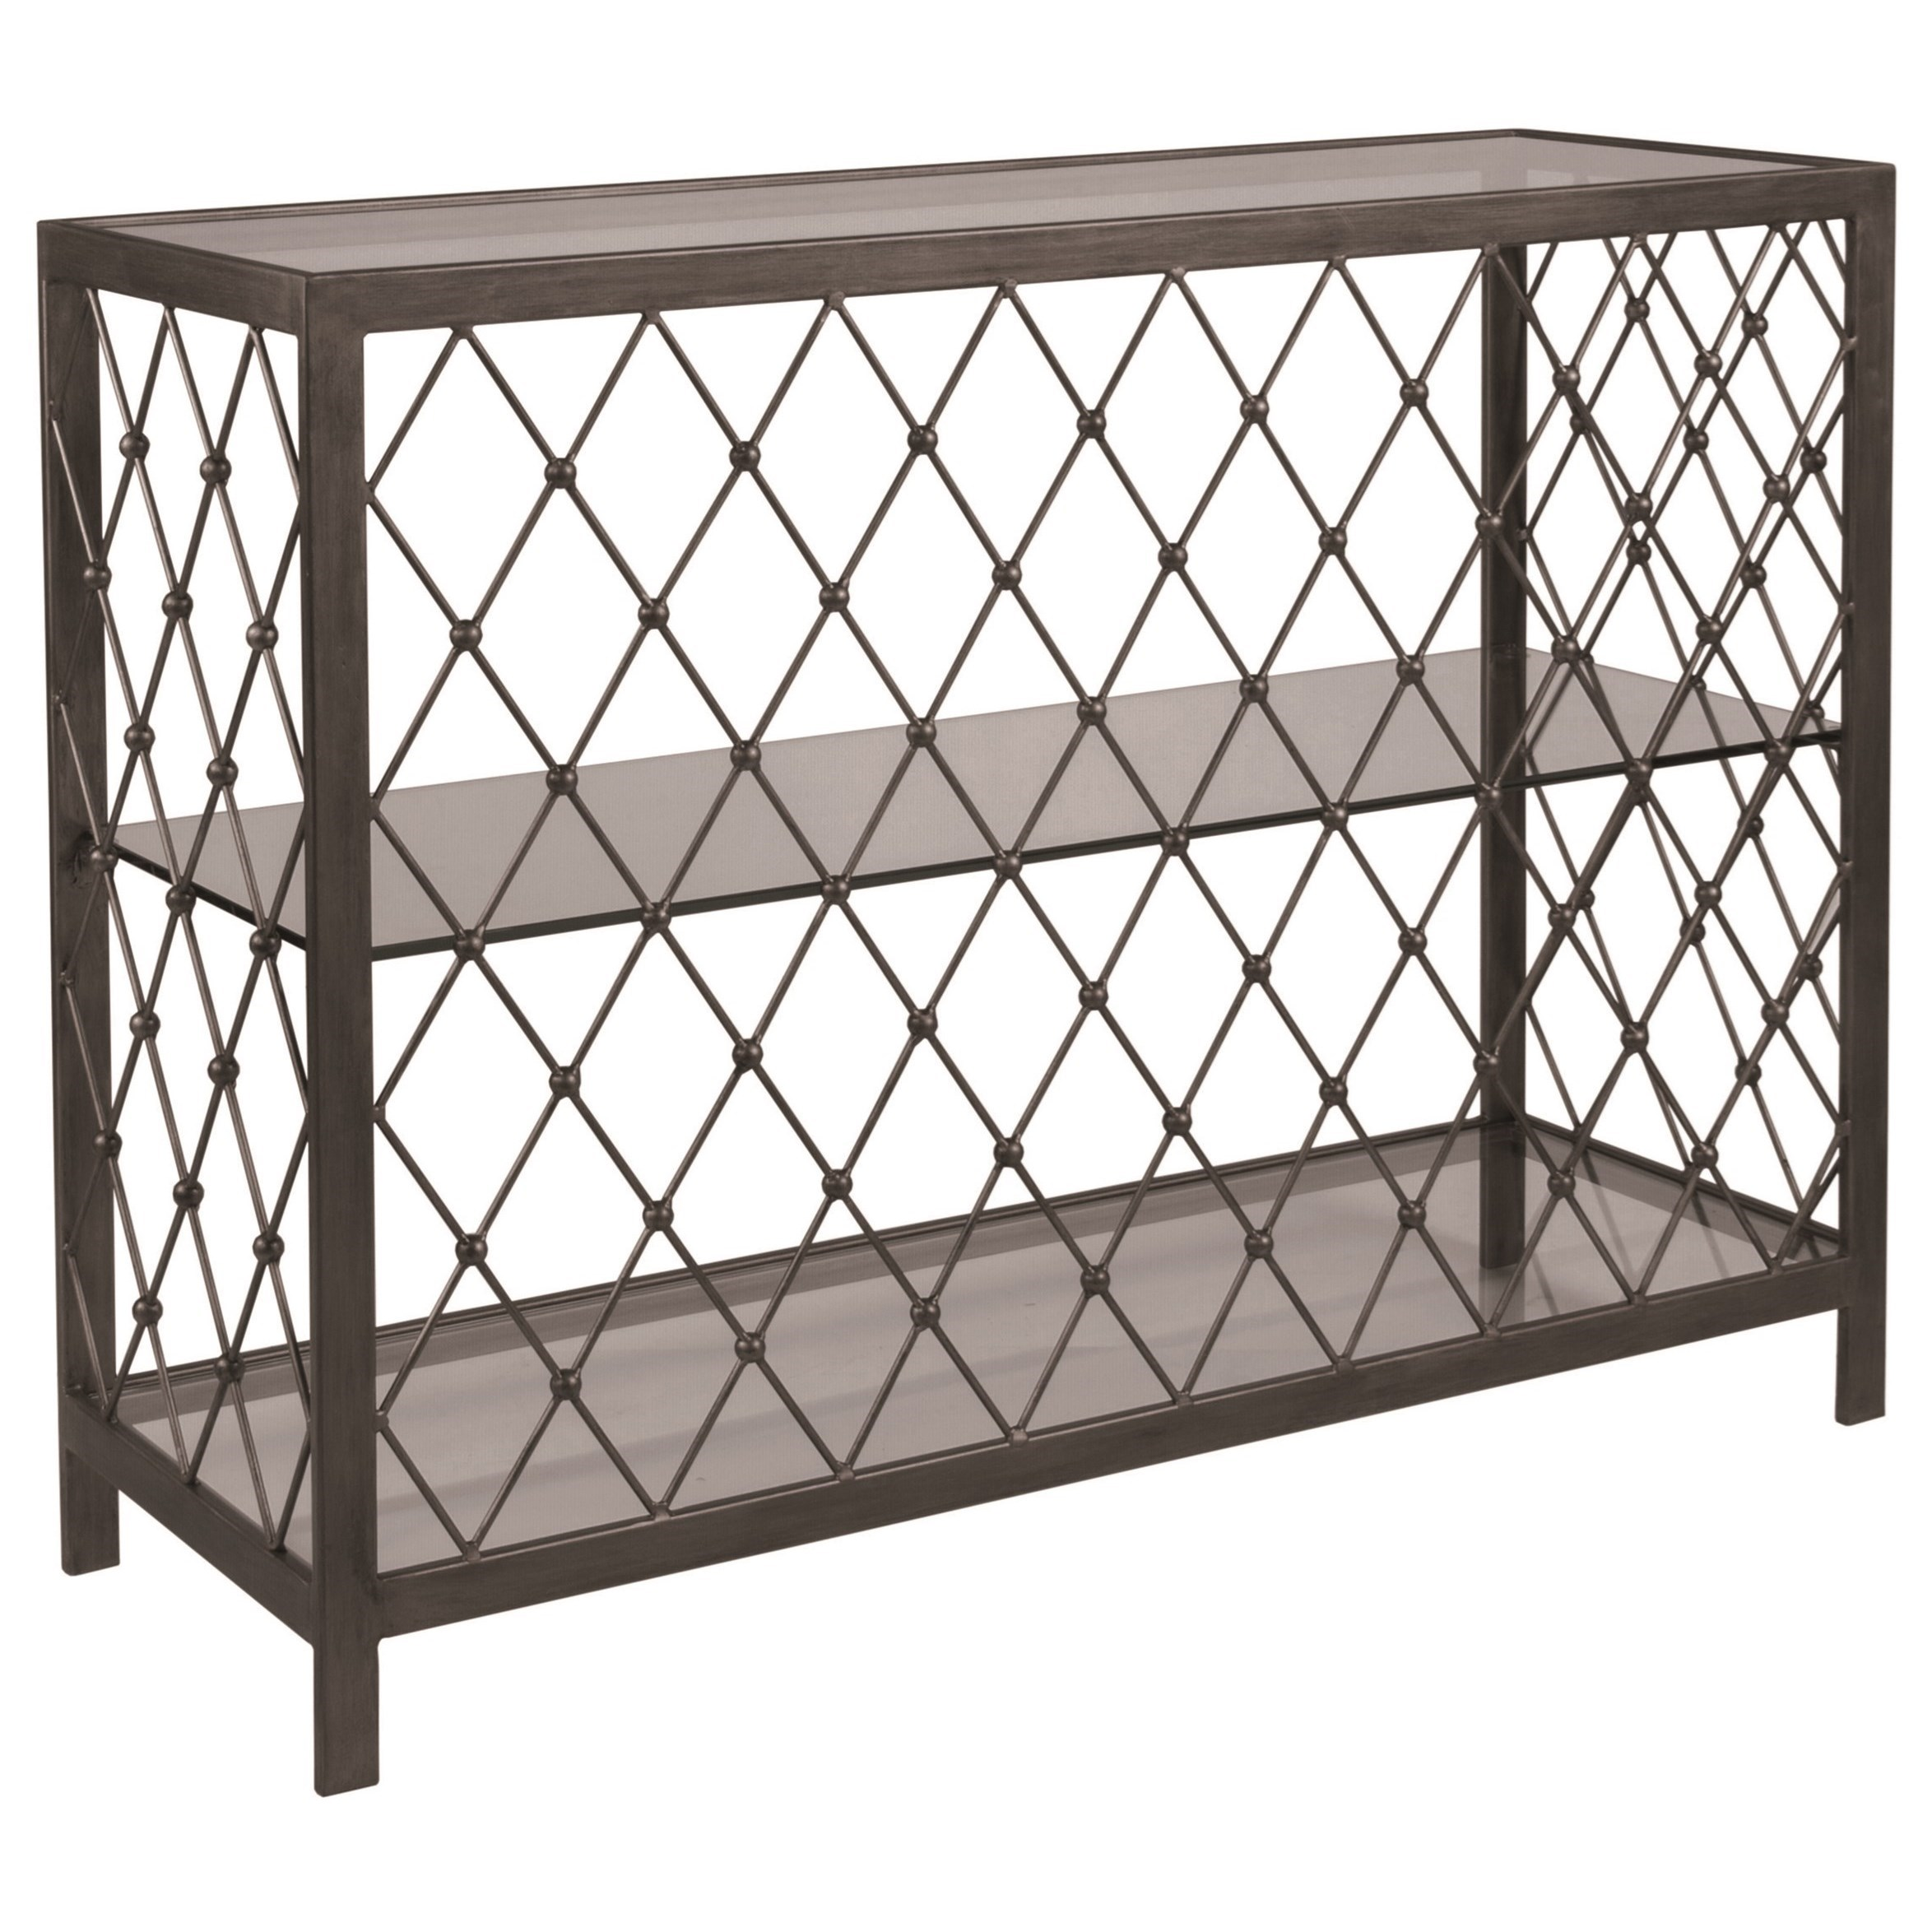 Metal Designs Royere Console Table by Artistica at Baer's Furniture